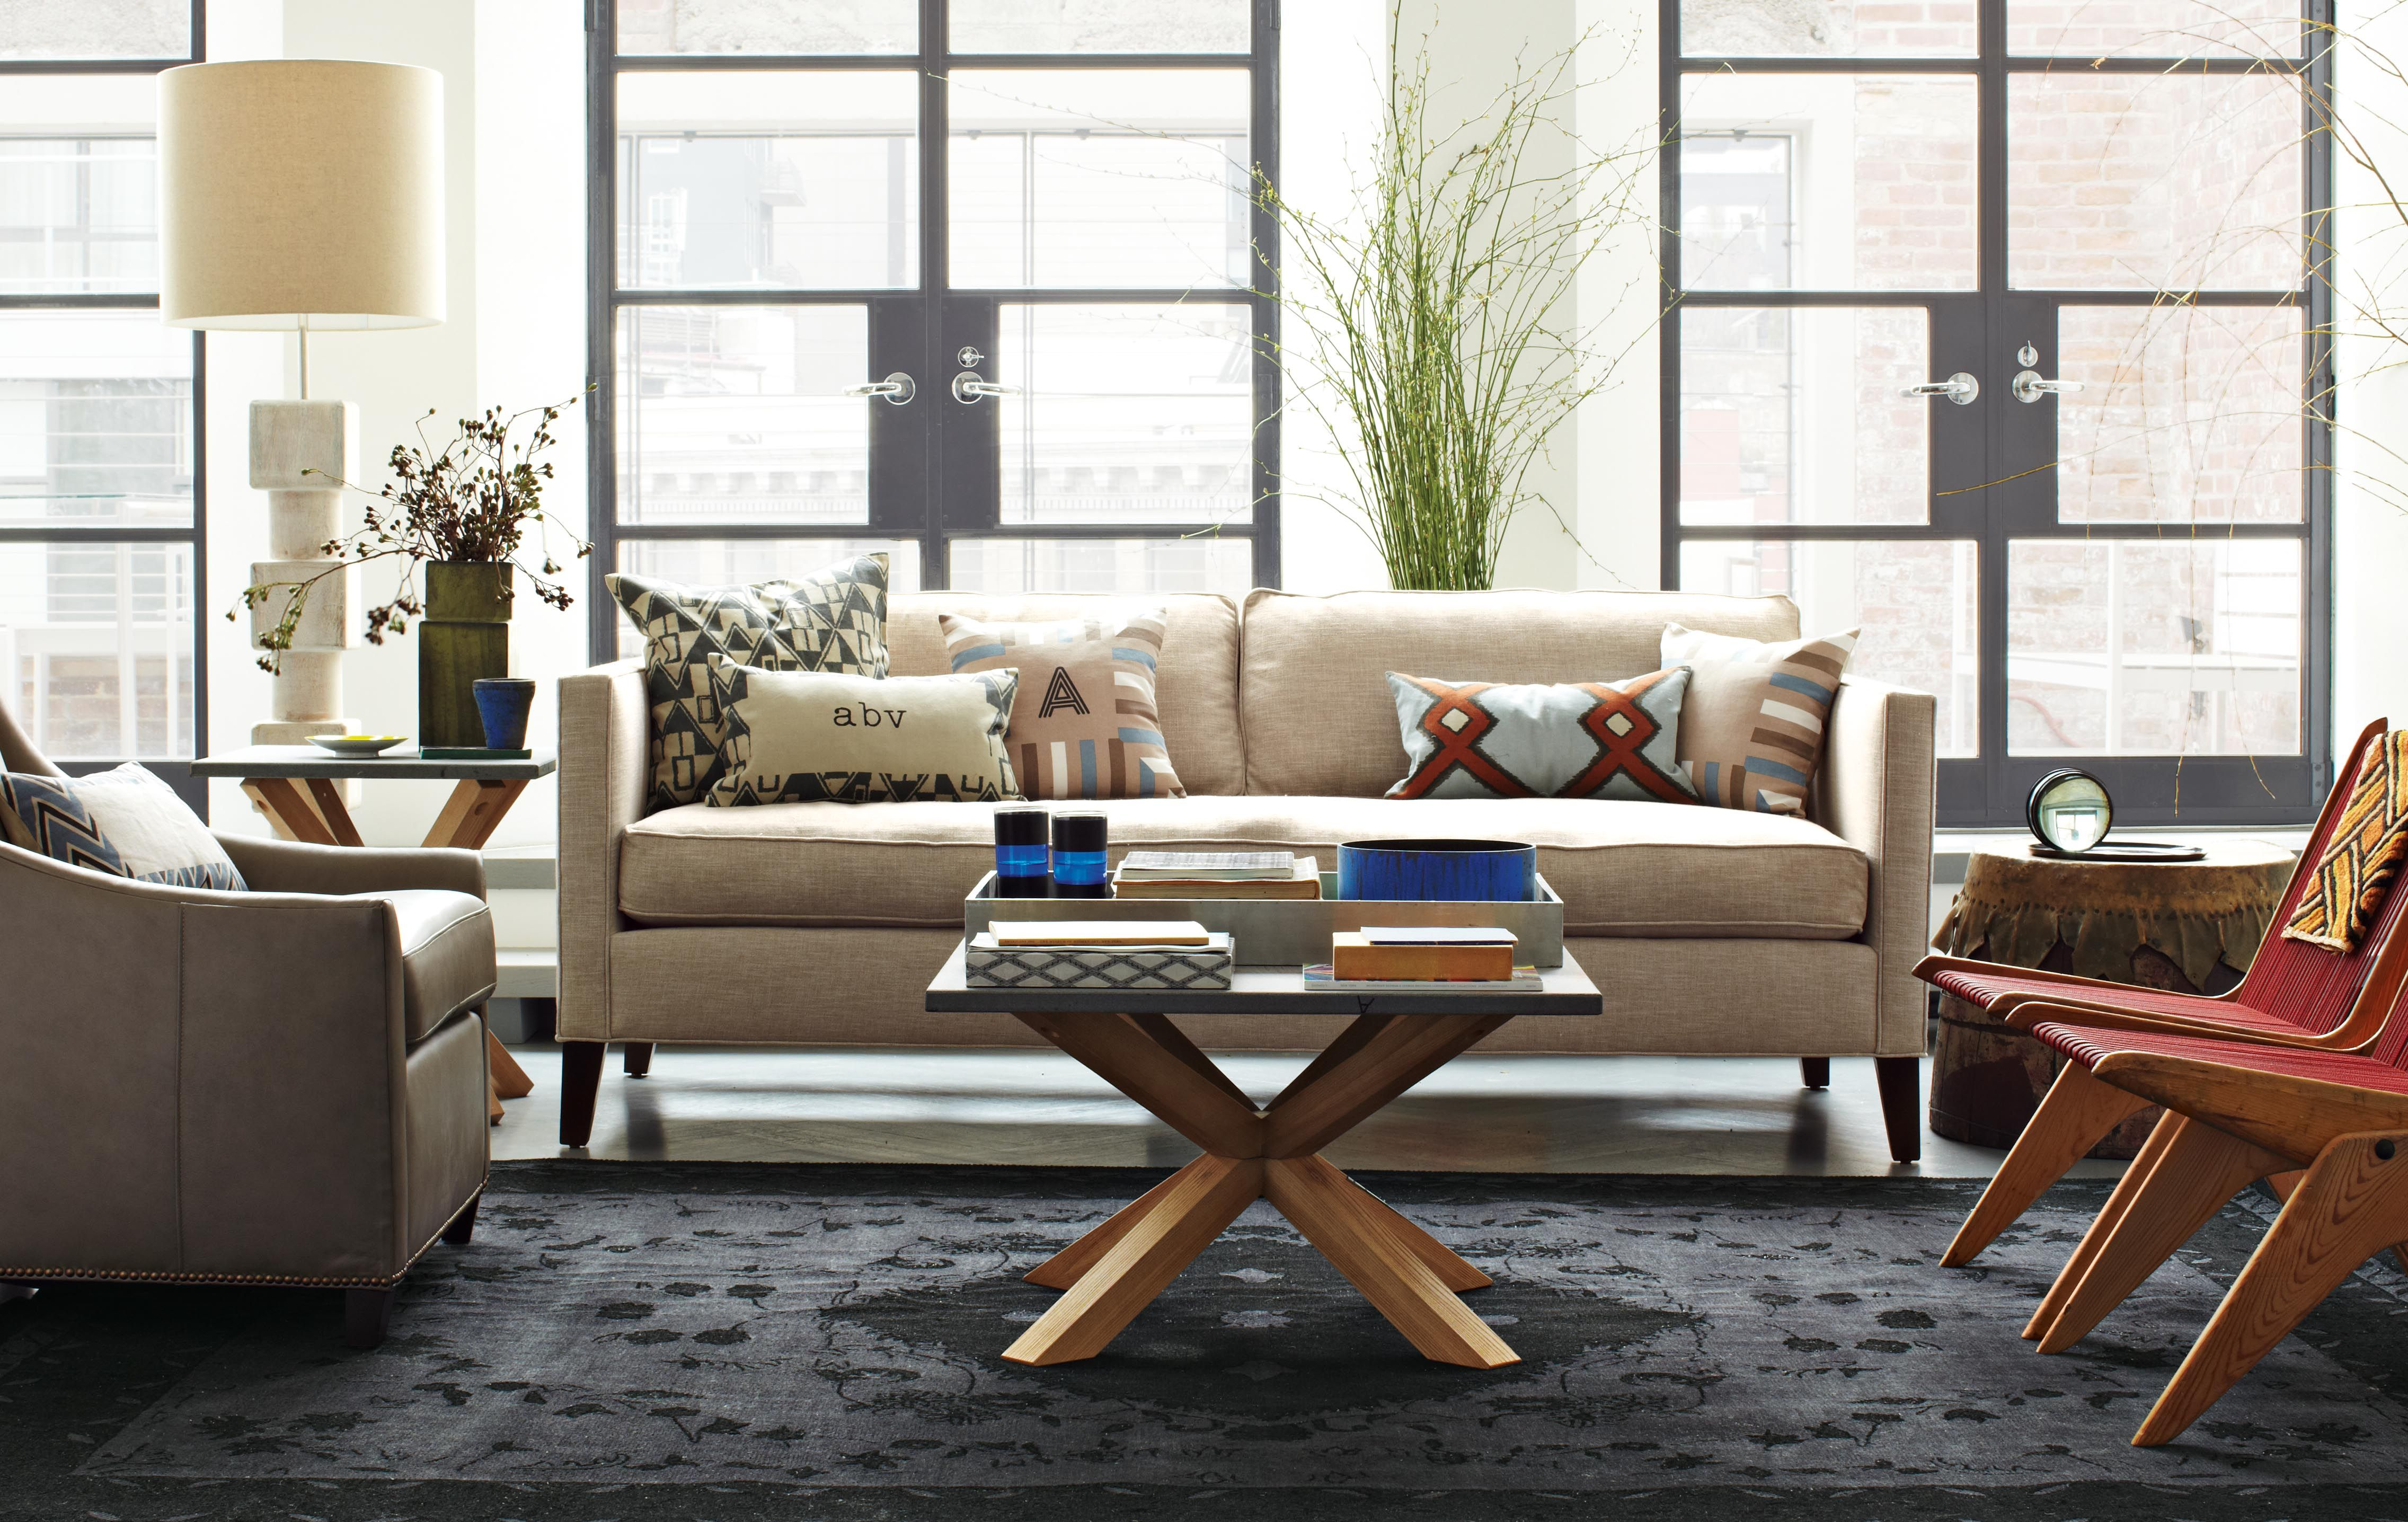 west elm and pottery barn to open in australia  small